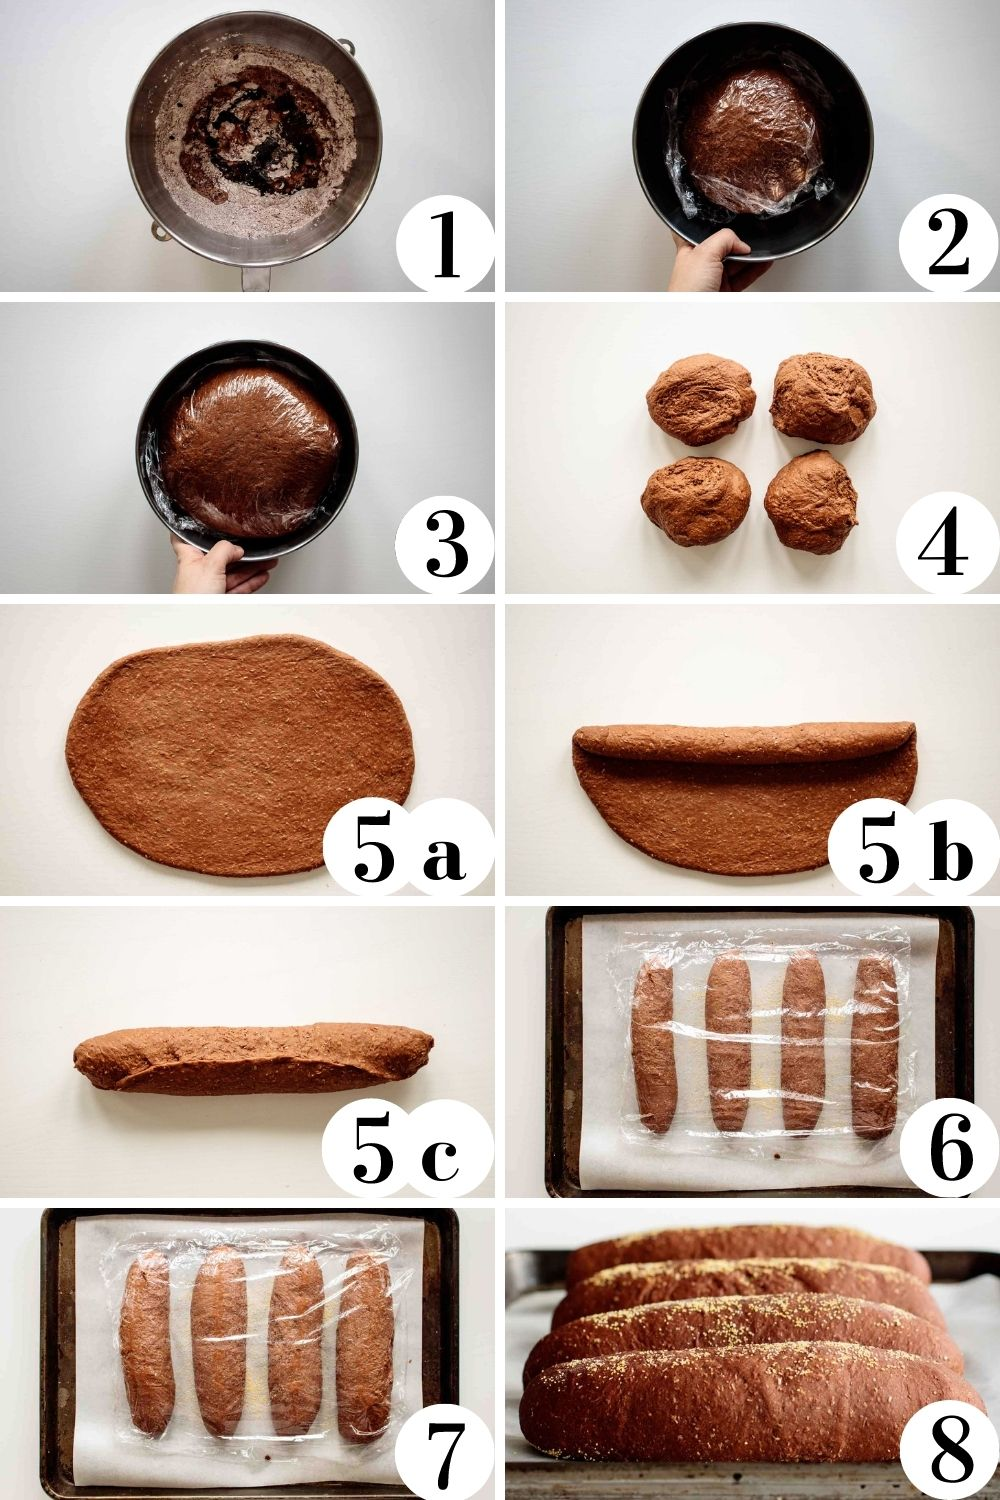 Step by step collage of how to make this copycat recipe.